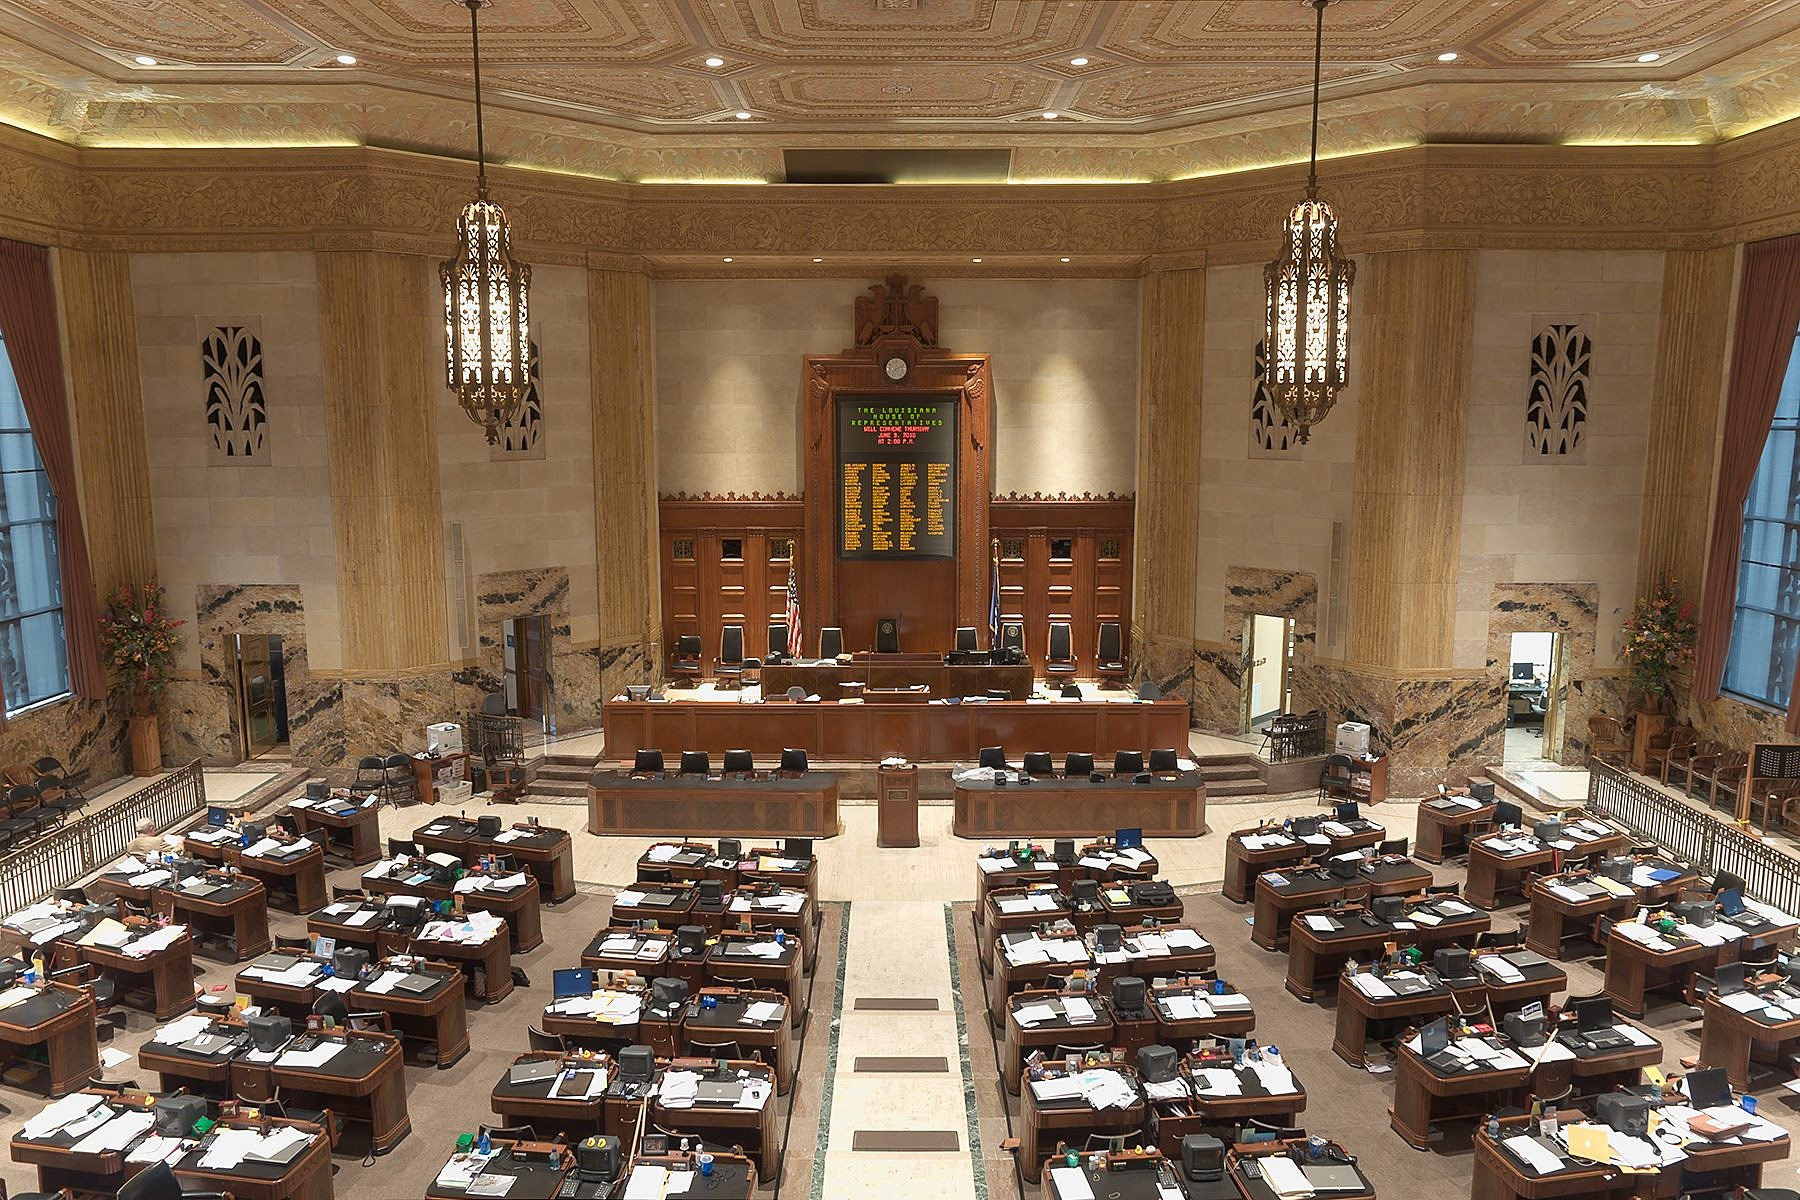 Bossier city lawmaker to introduce bill to enhance religious freedom sciox Choice Image